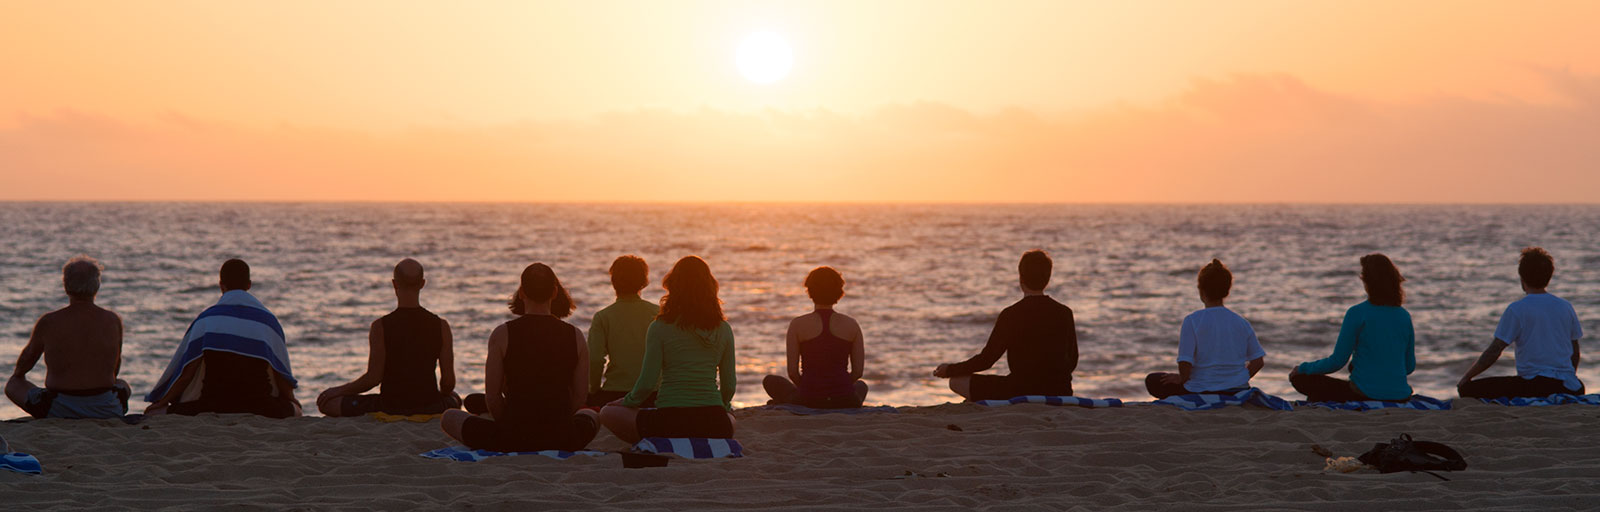 Mexico Yoga Retreats: Beach Meditation at Sunset